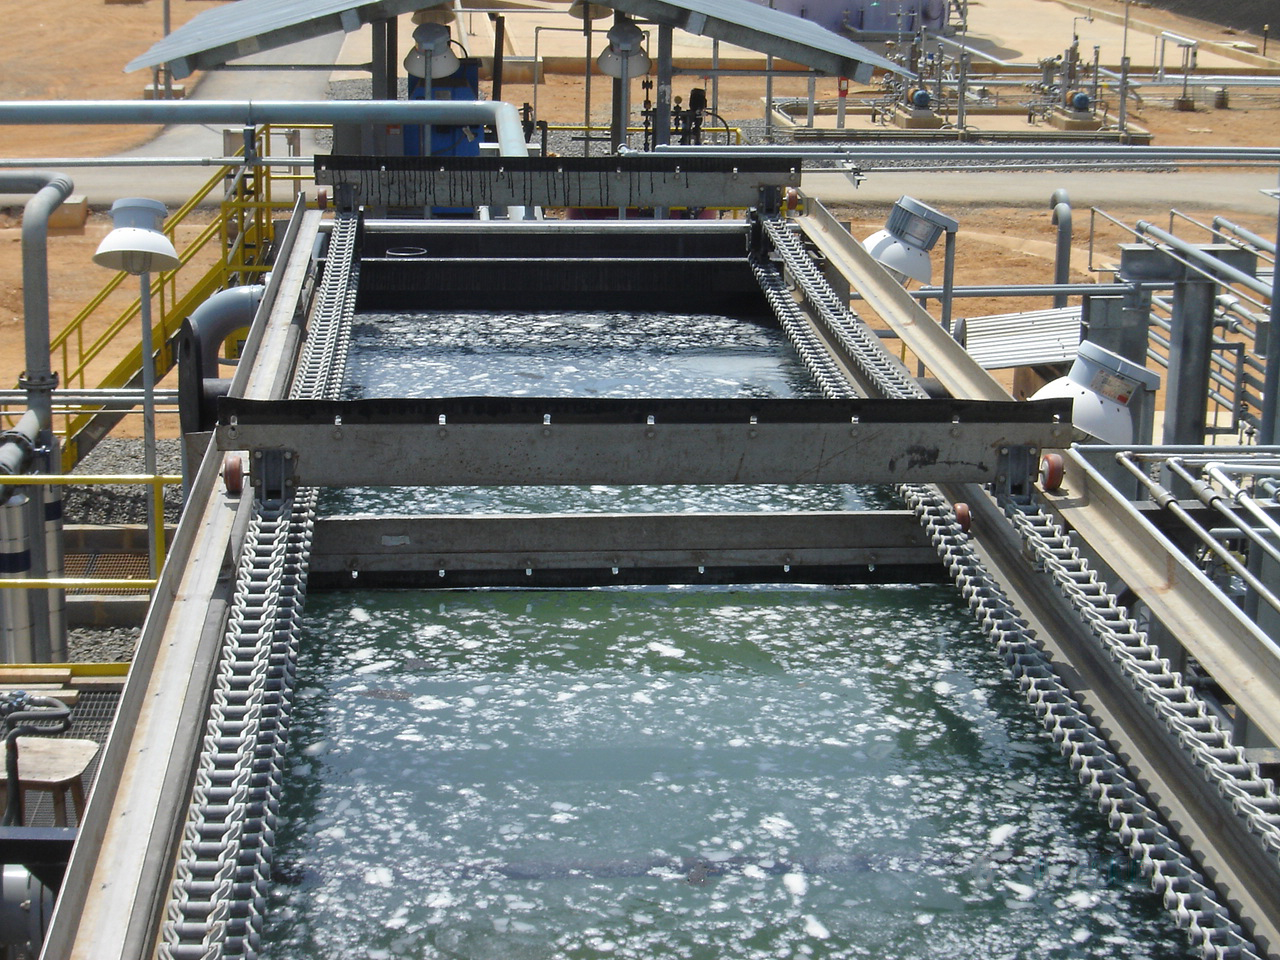 https://aquanza.org/wp-content/uploads/2020/09/Di-FloatTM-DAF-Clarifier-Jose-Venezuela.jpg